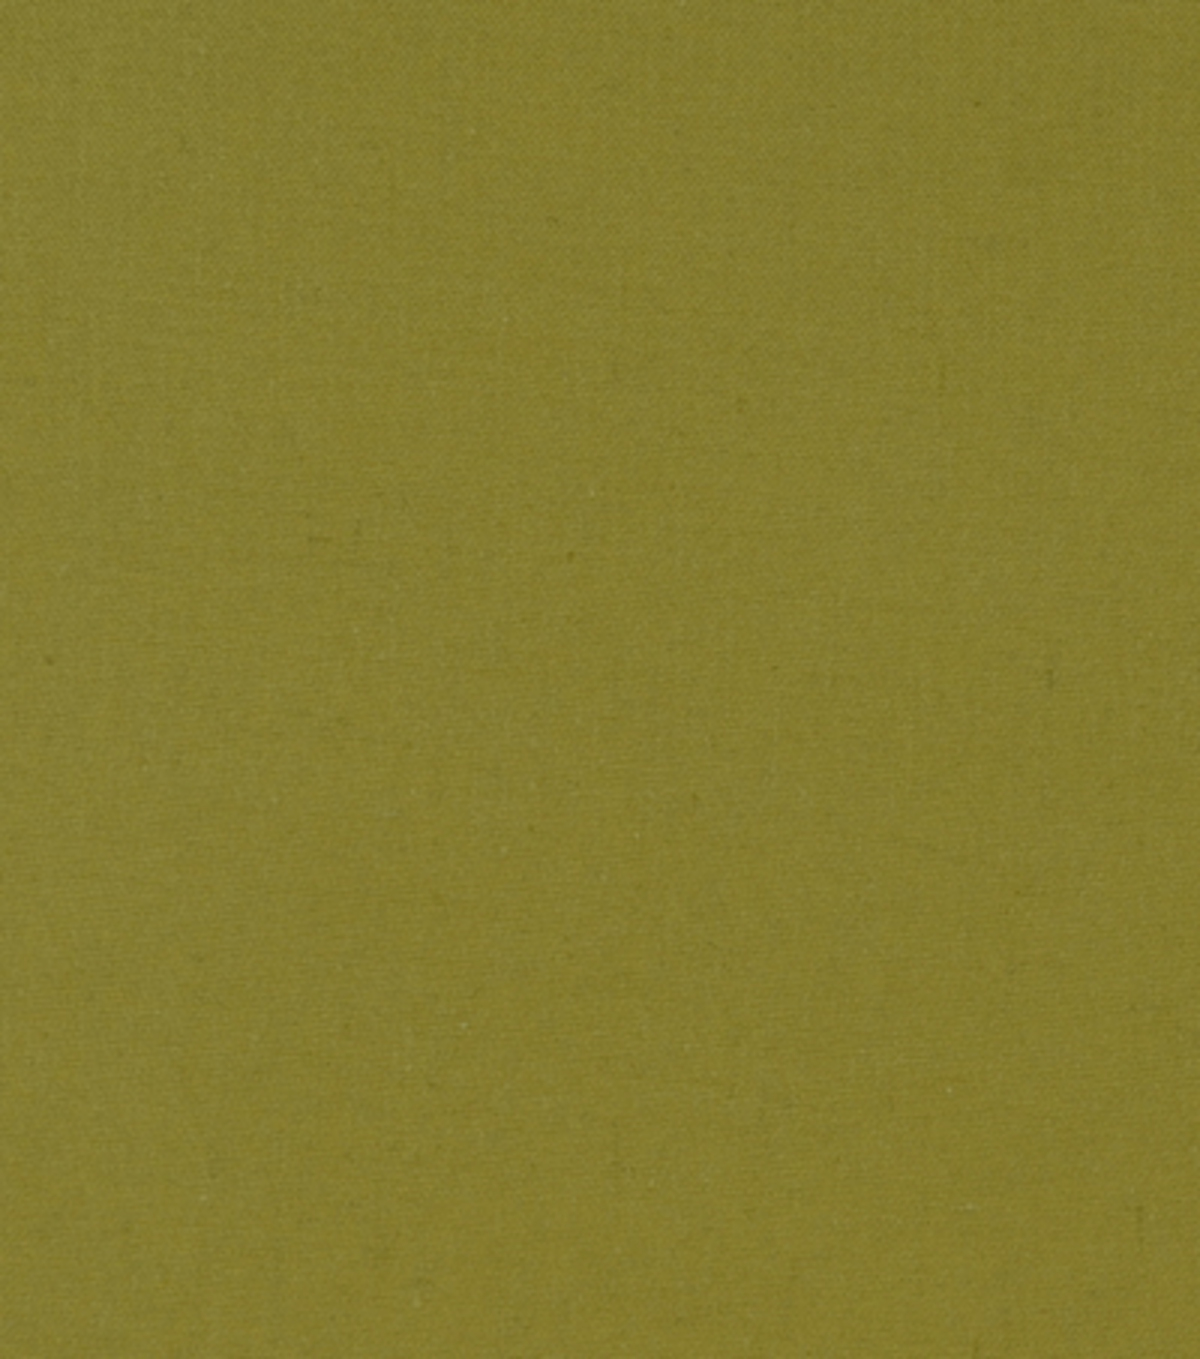 Home Decor 8\u0022x8\u0022 Fabric Swatch-Covington Melrose 26 Caper